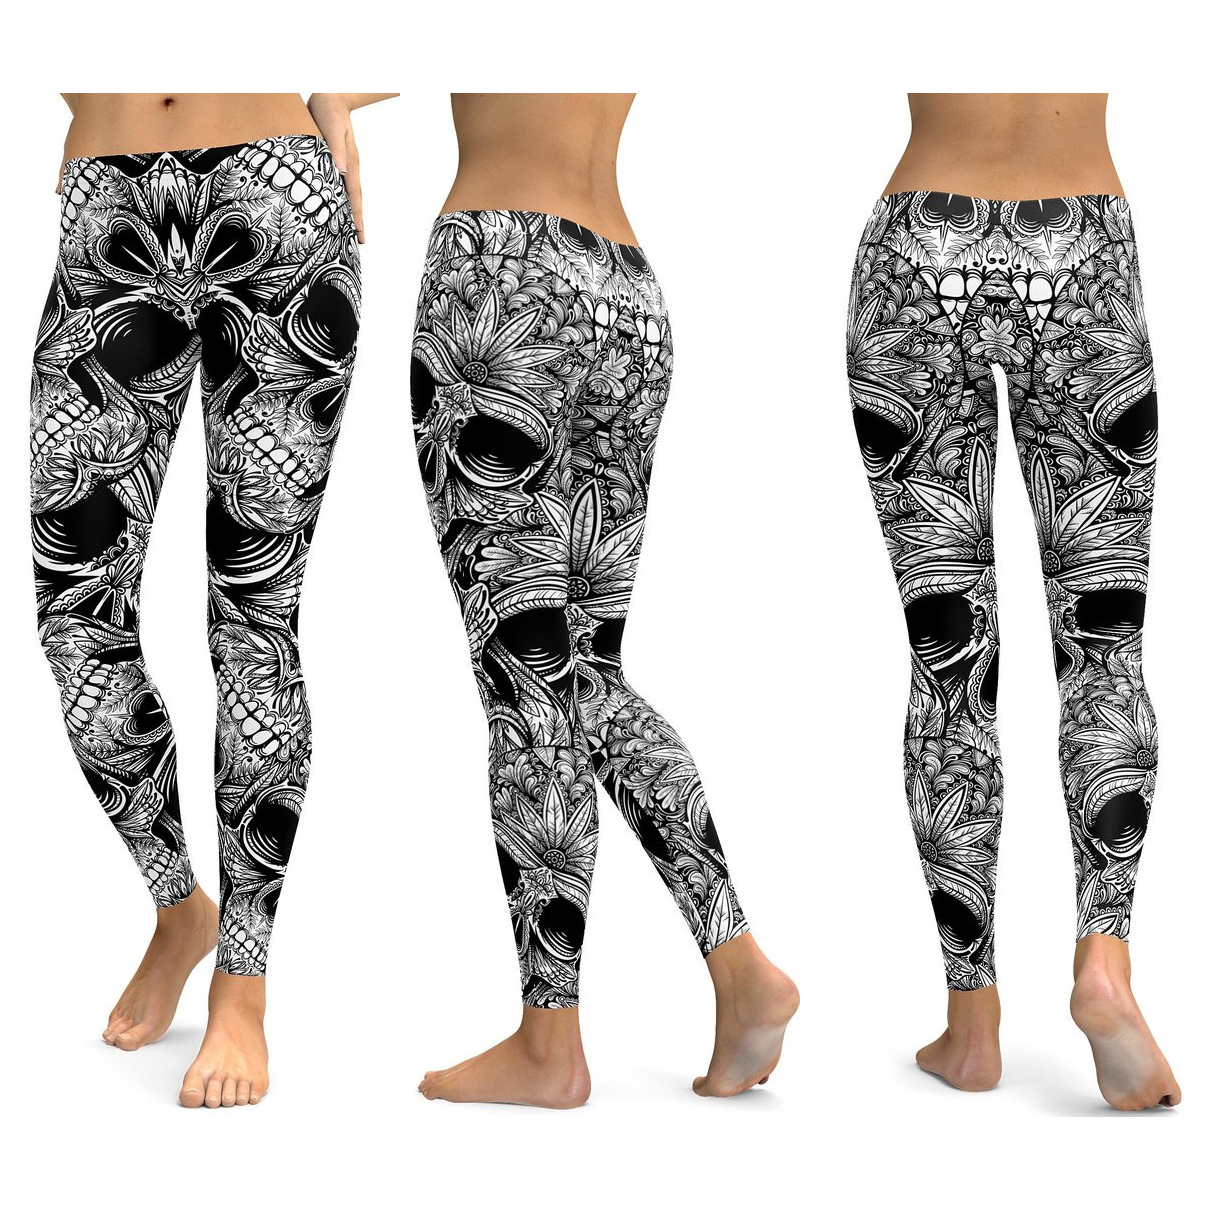 Skull Leggings Yoga Pants Women Sports Pants Fitness Running Sexy Push Up Gym Wear Elastic Slim Workout Leggings 22